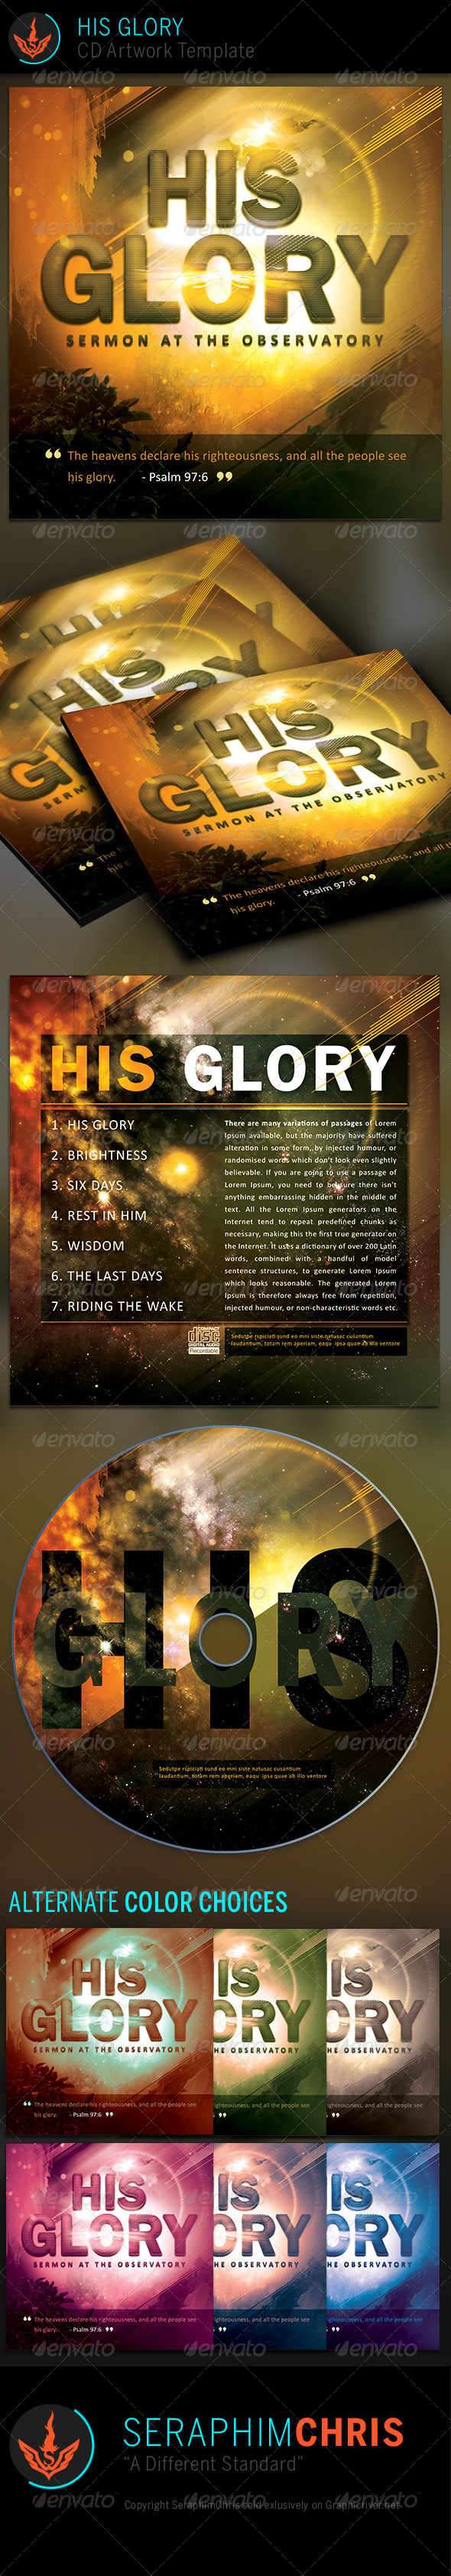 GraphicRiver His Glory CD Artwork Template 7069945